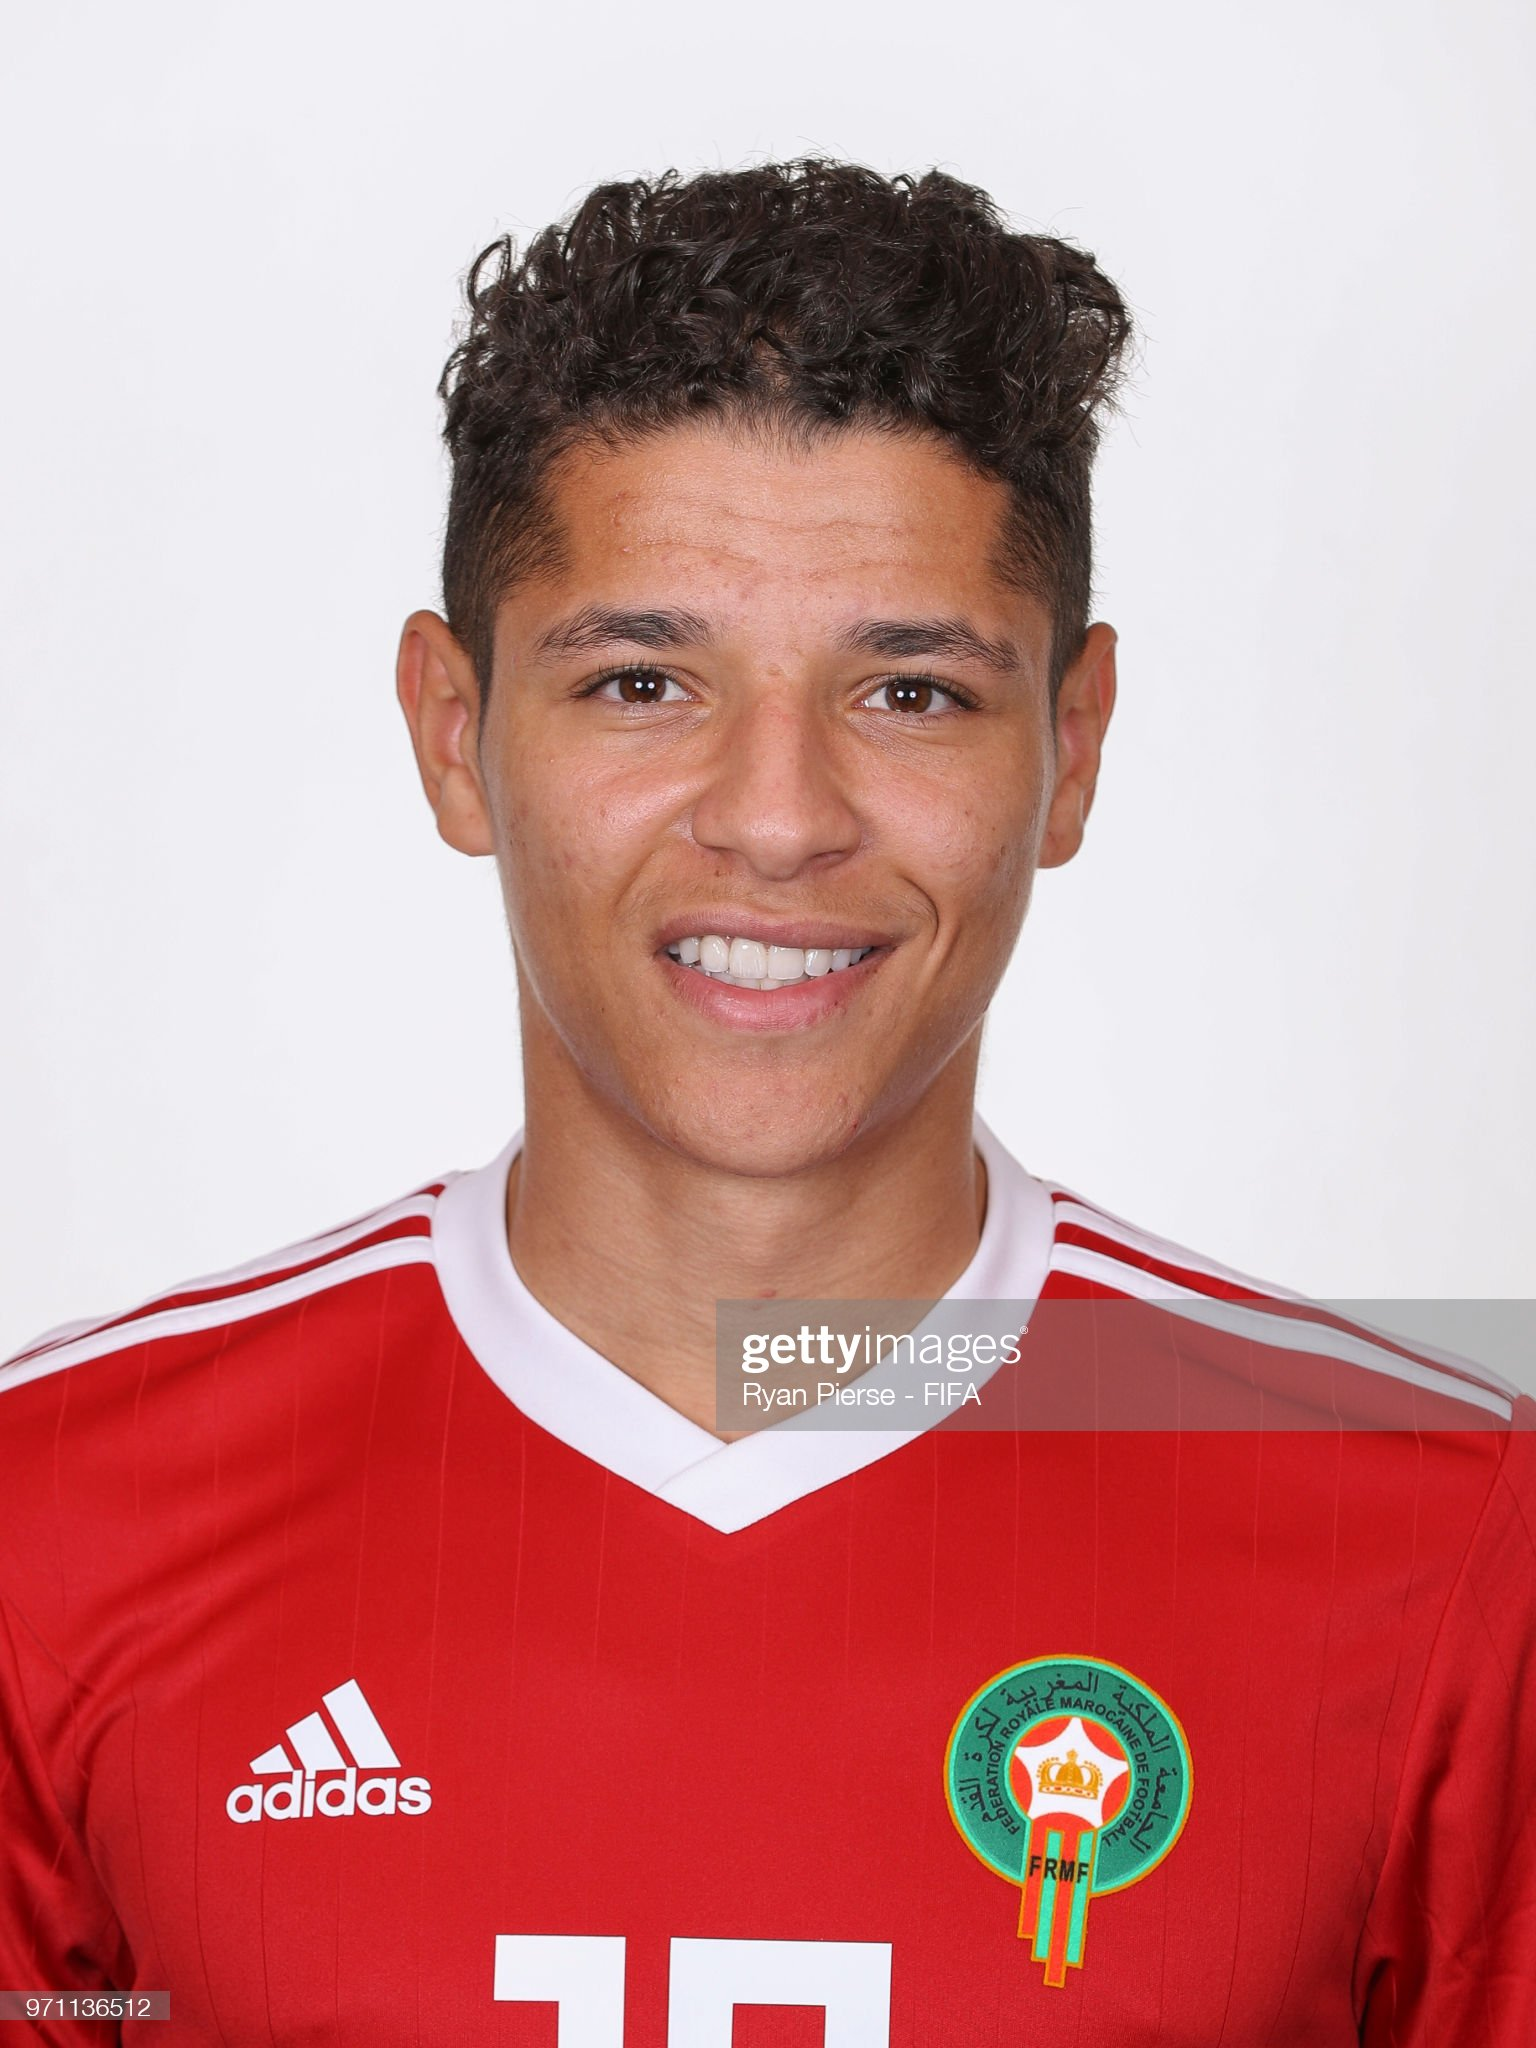 Norteafricanos Amine-harit-of-morocco-poses-during-the-official-fifa-world-cup-2018-picture-id971136512?s=2048x2048